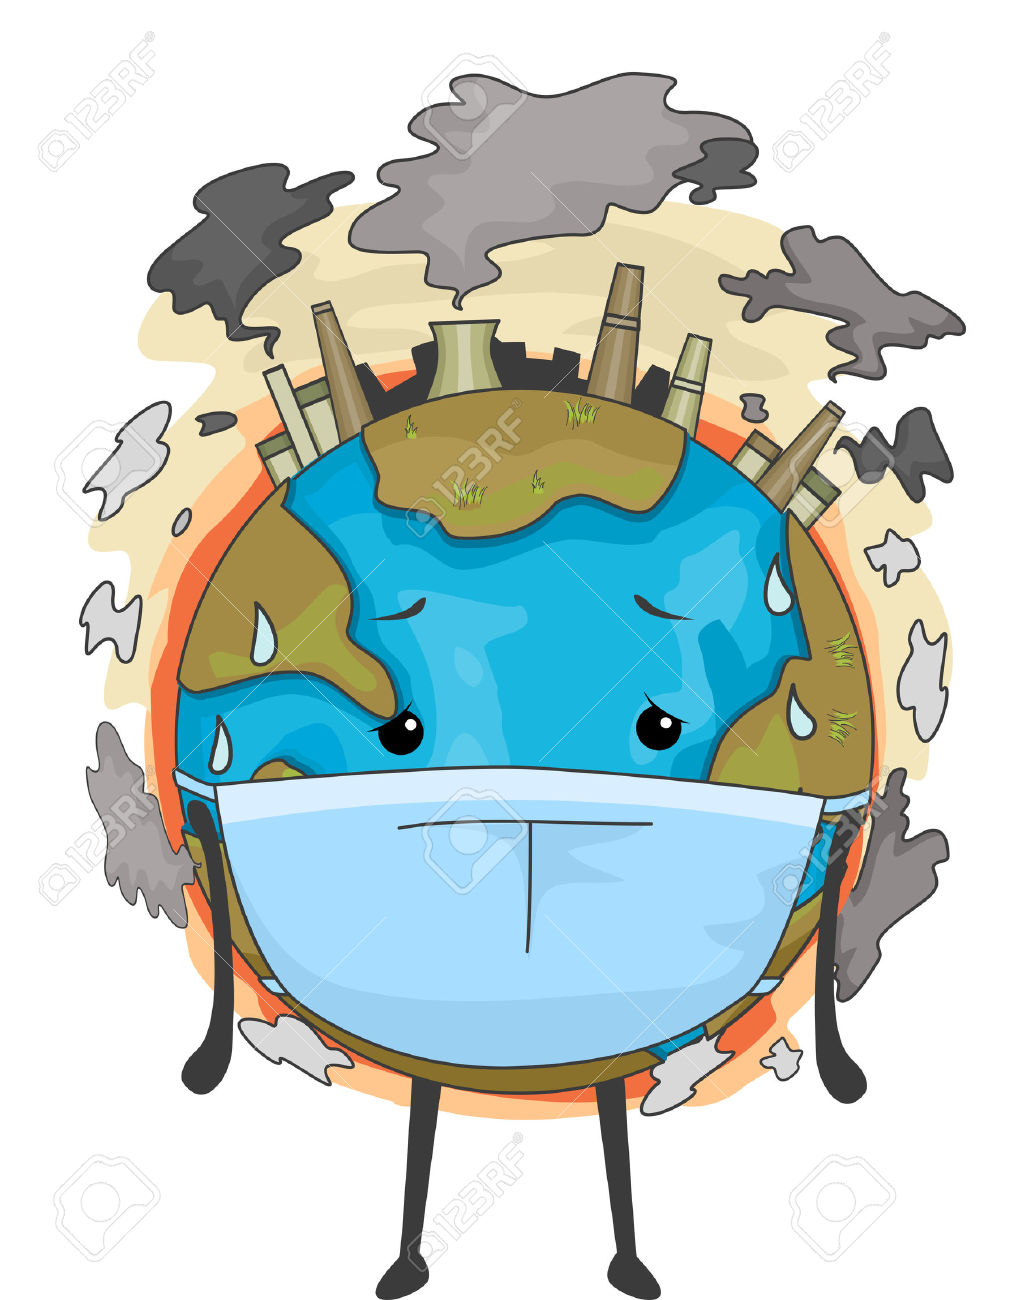 Drawing free download best. Pollution clipart atmosphere